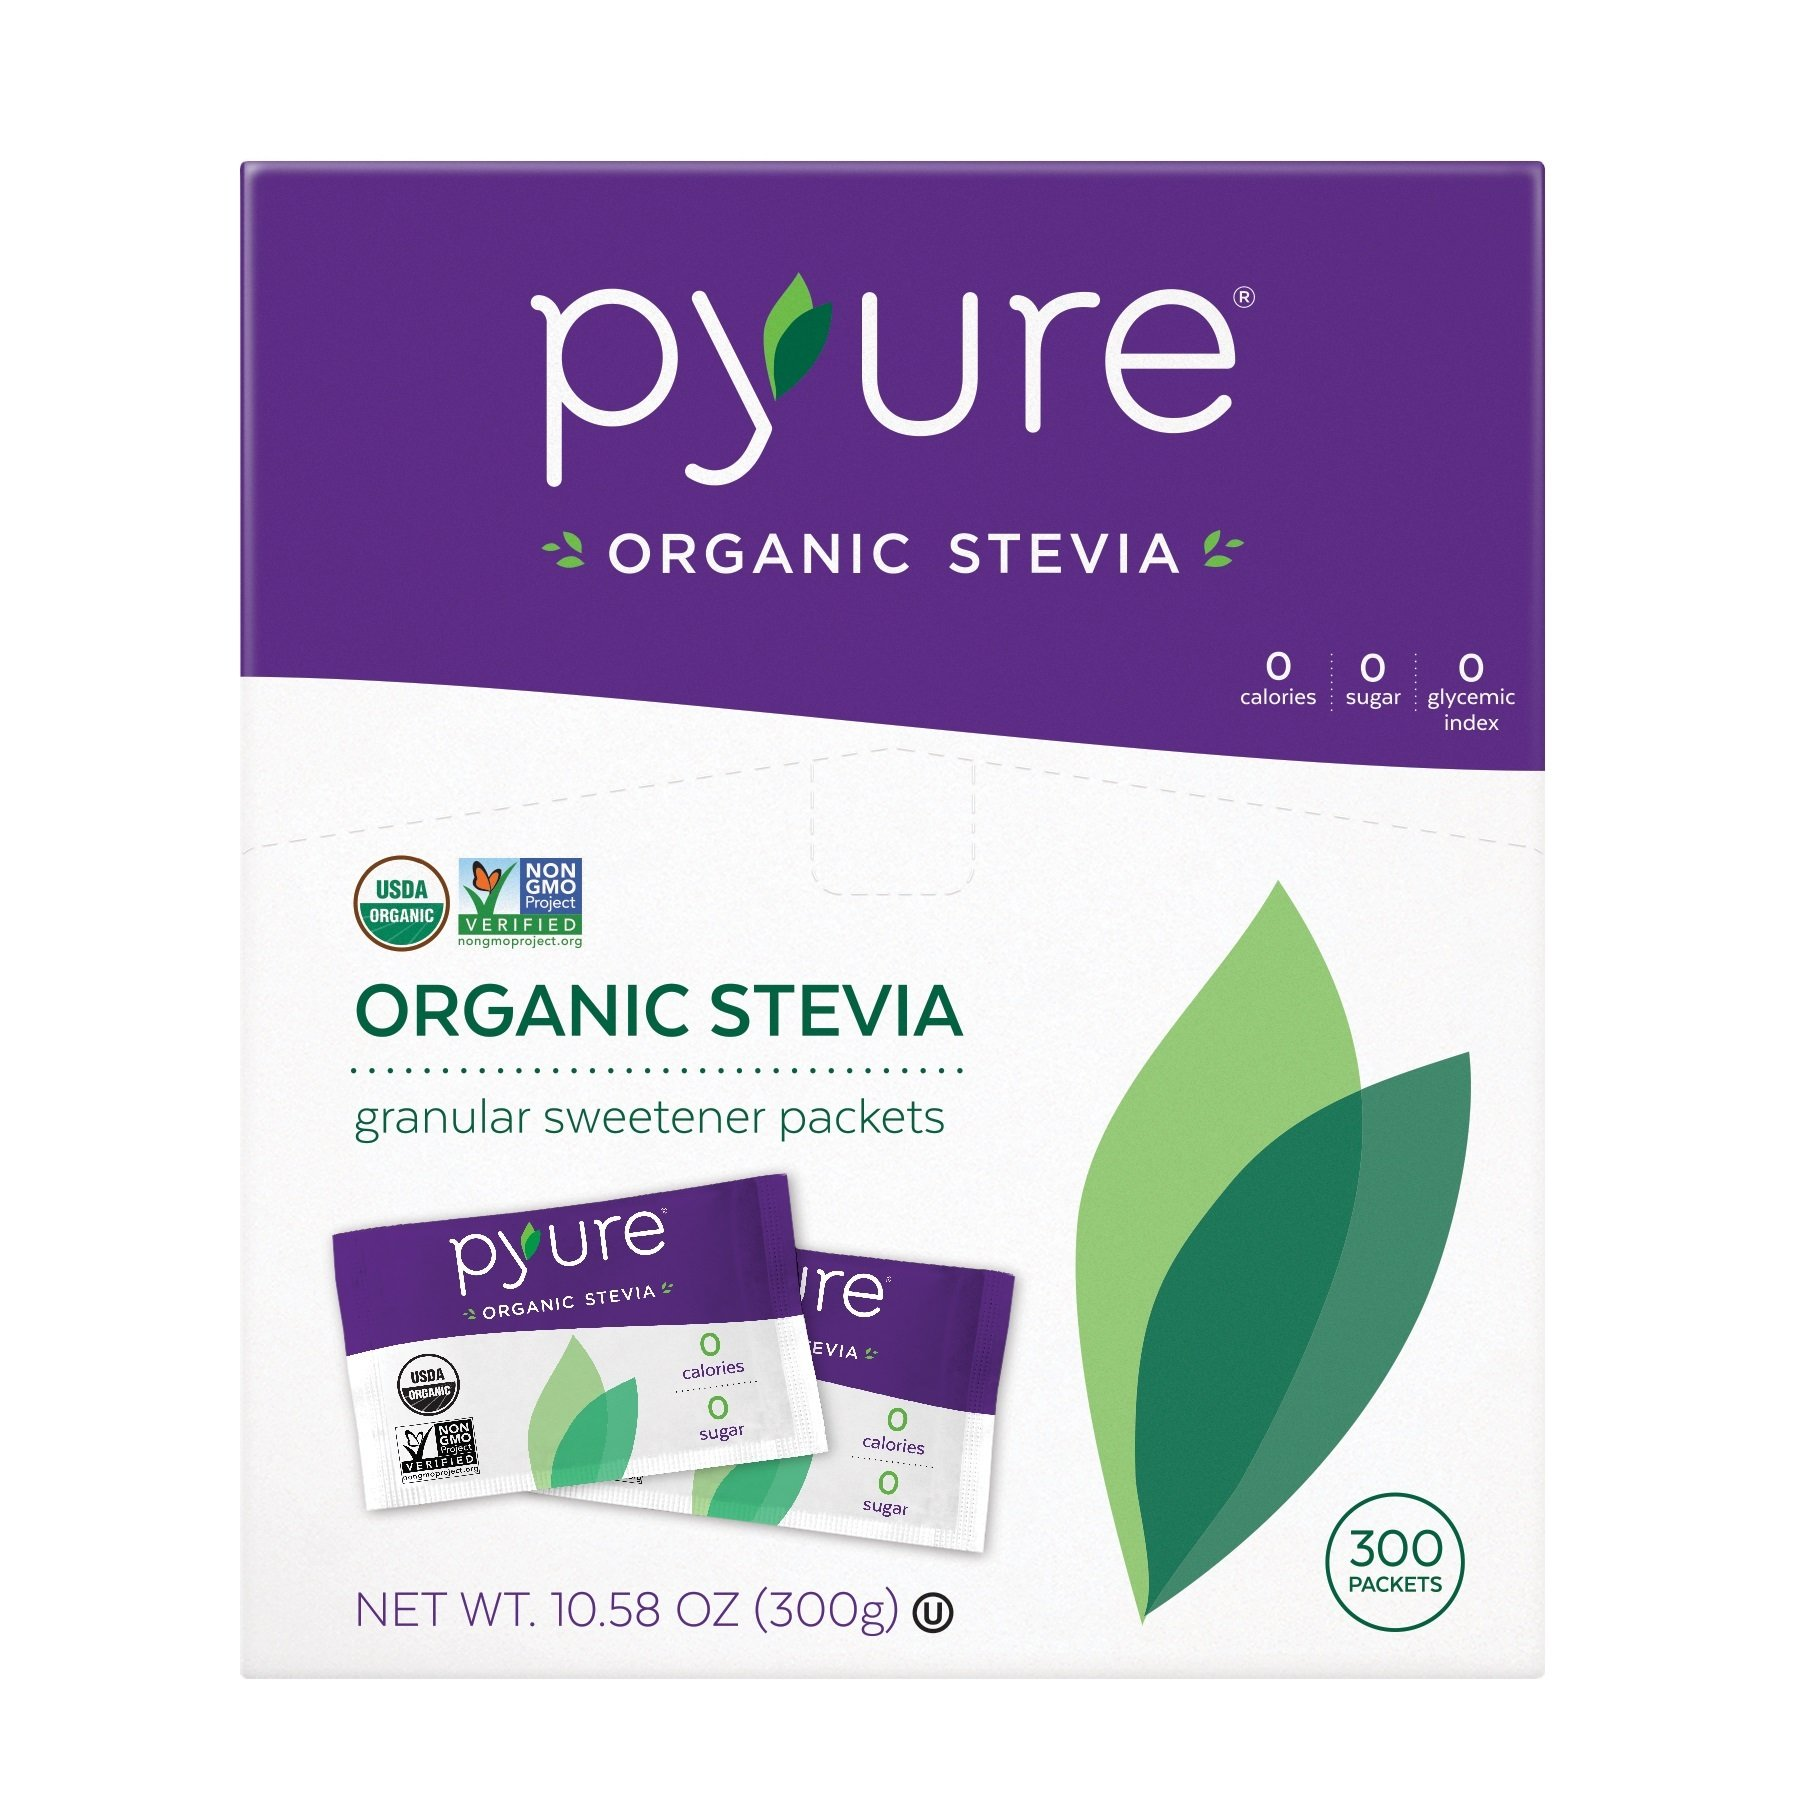 Pyure Organic Stevia Sweetener Packets, Granulated Sugar Substitute, 300 Count by Pyure